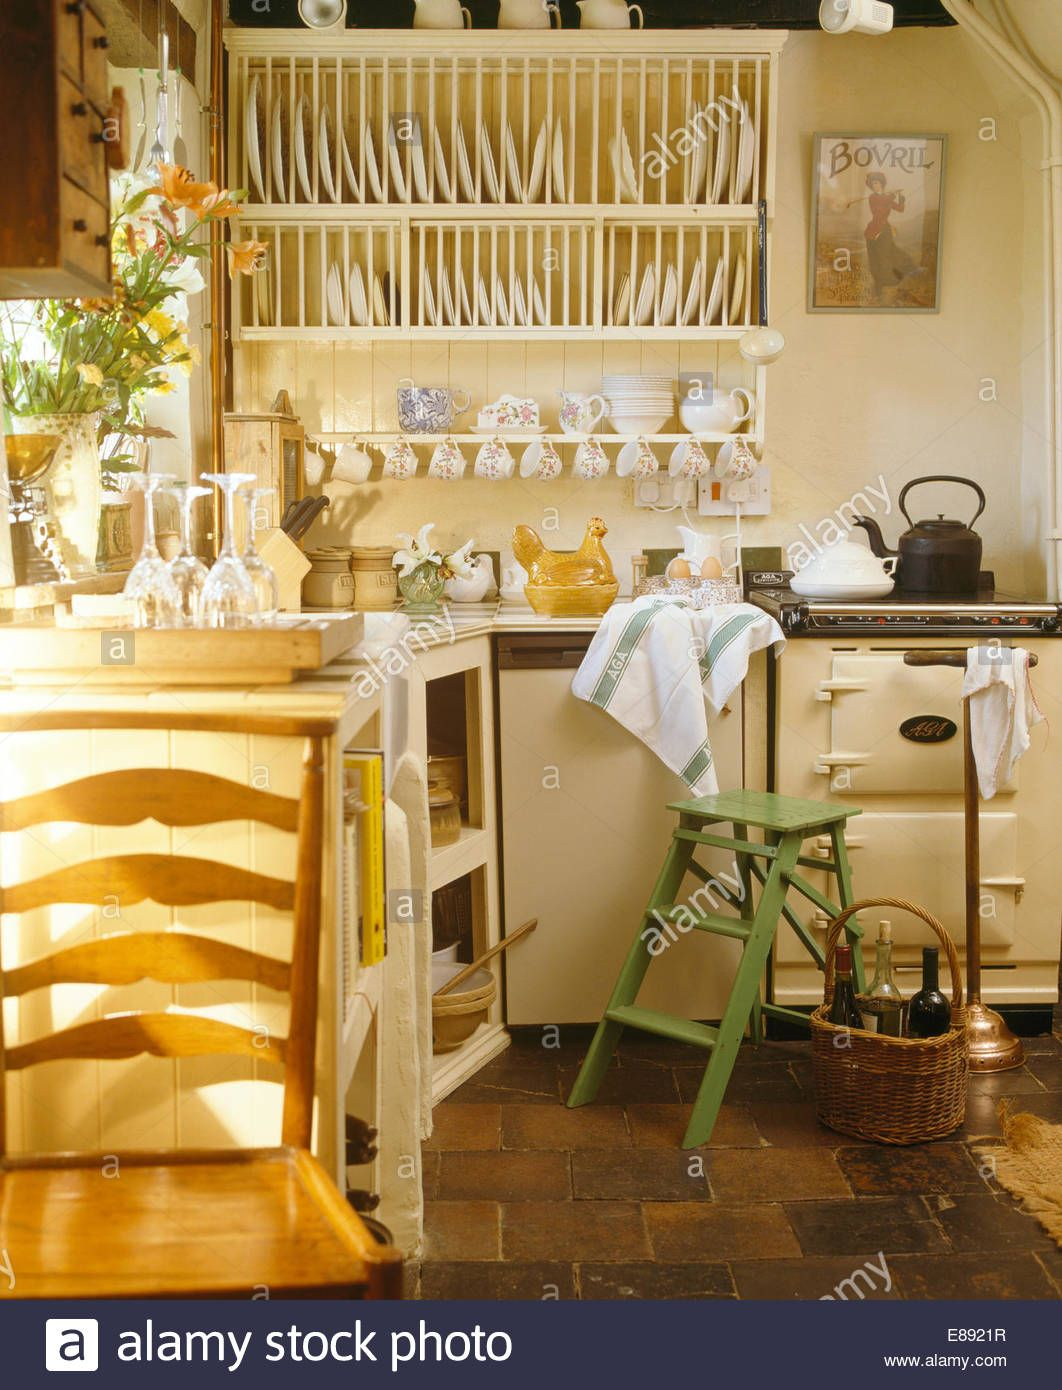 Plate rack on wall beside cream Aga oven in cream cottage kitchen ...